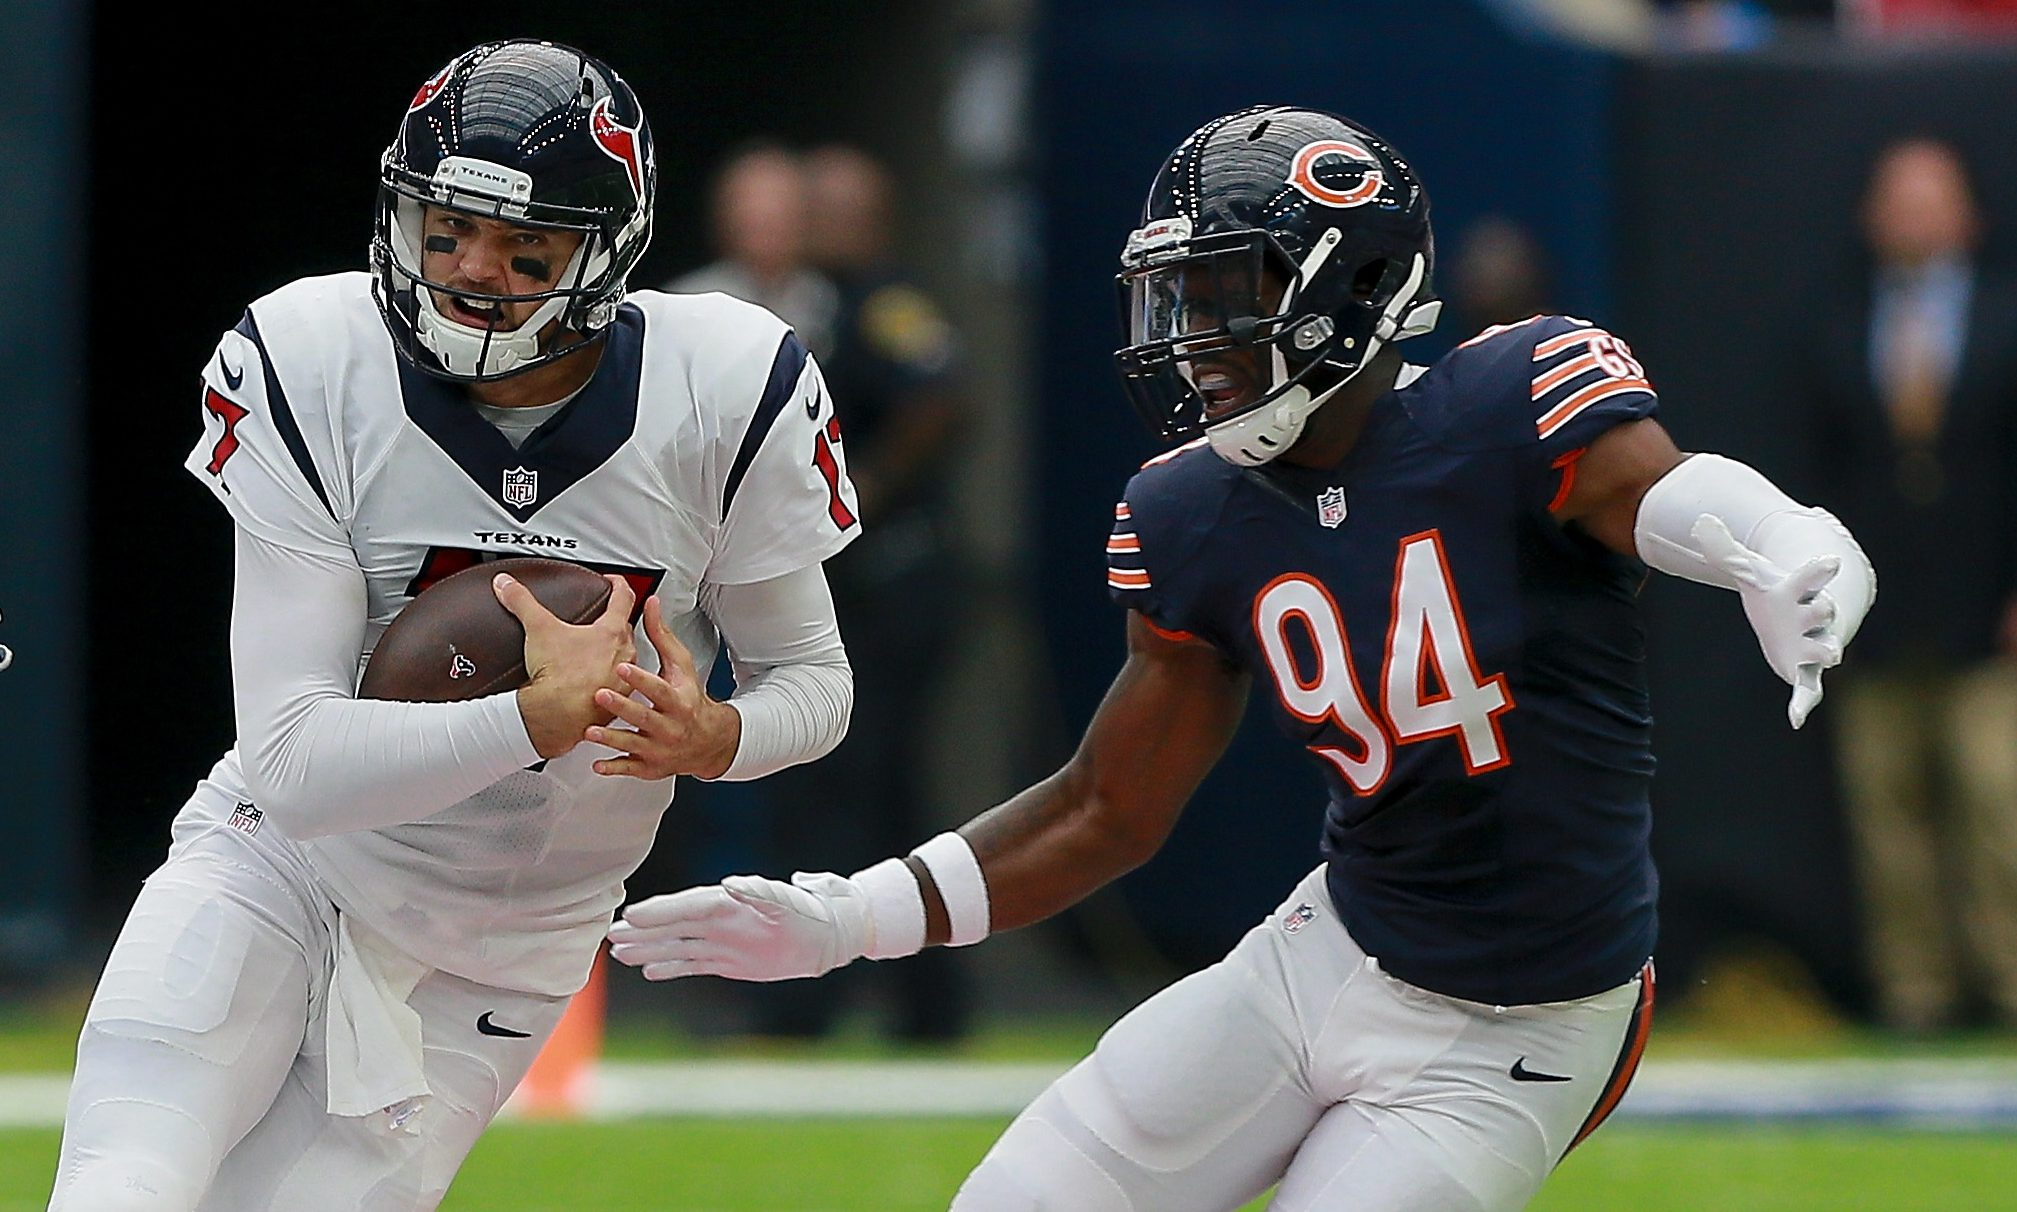 Leonard Floyd looks to tackle Brock Osweiler. (Photo by Bob Levey/Getty Images)